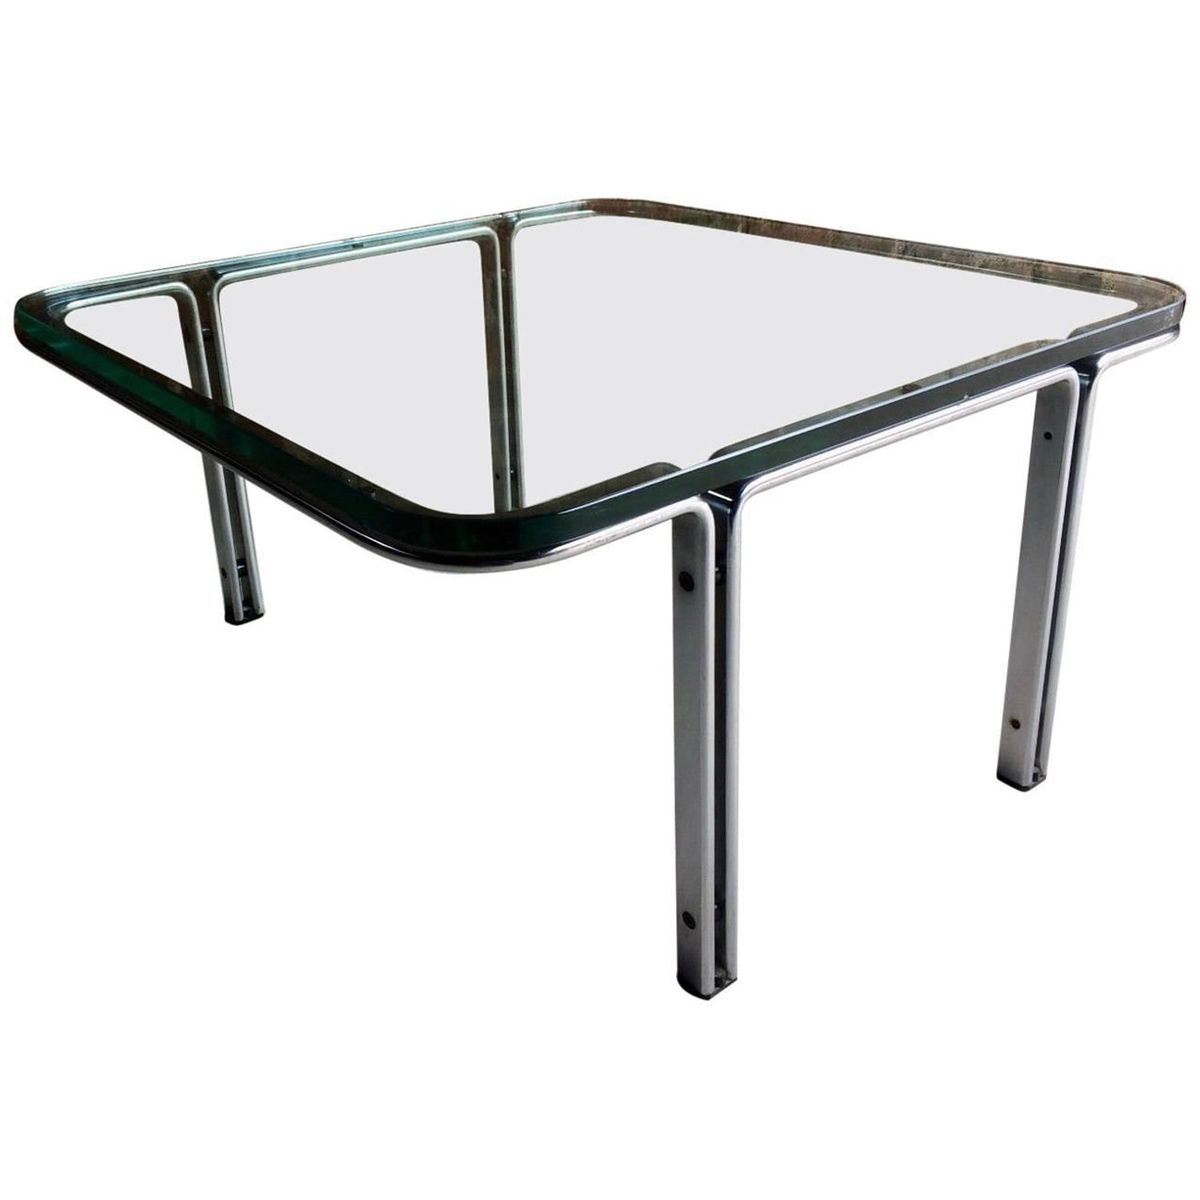 Model T111 Square Steel Glass Coffee Table By Horst Br Ning For Kill International 1960s For